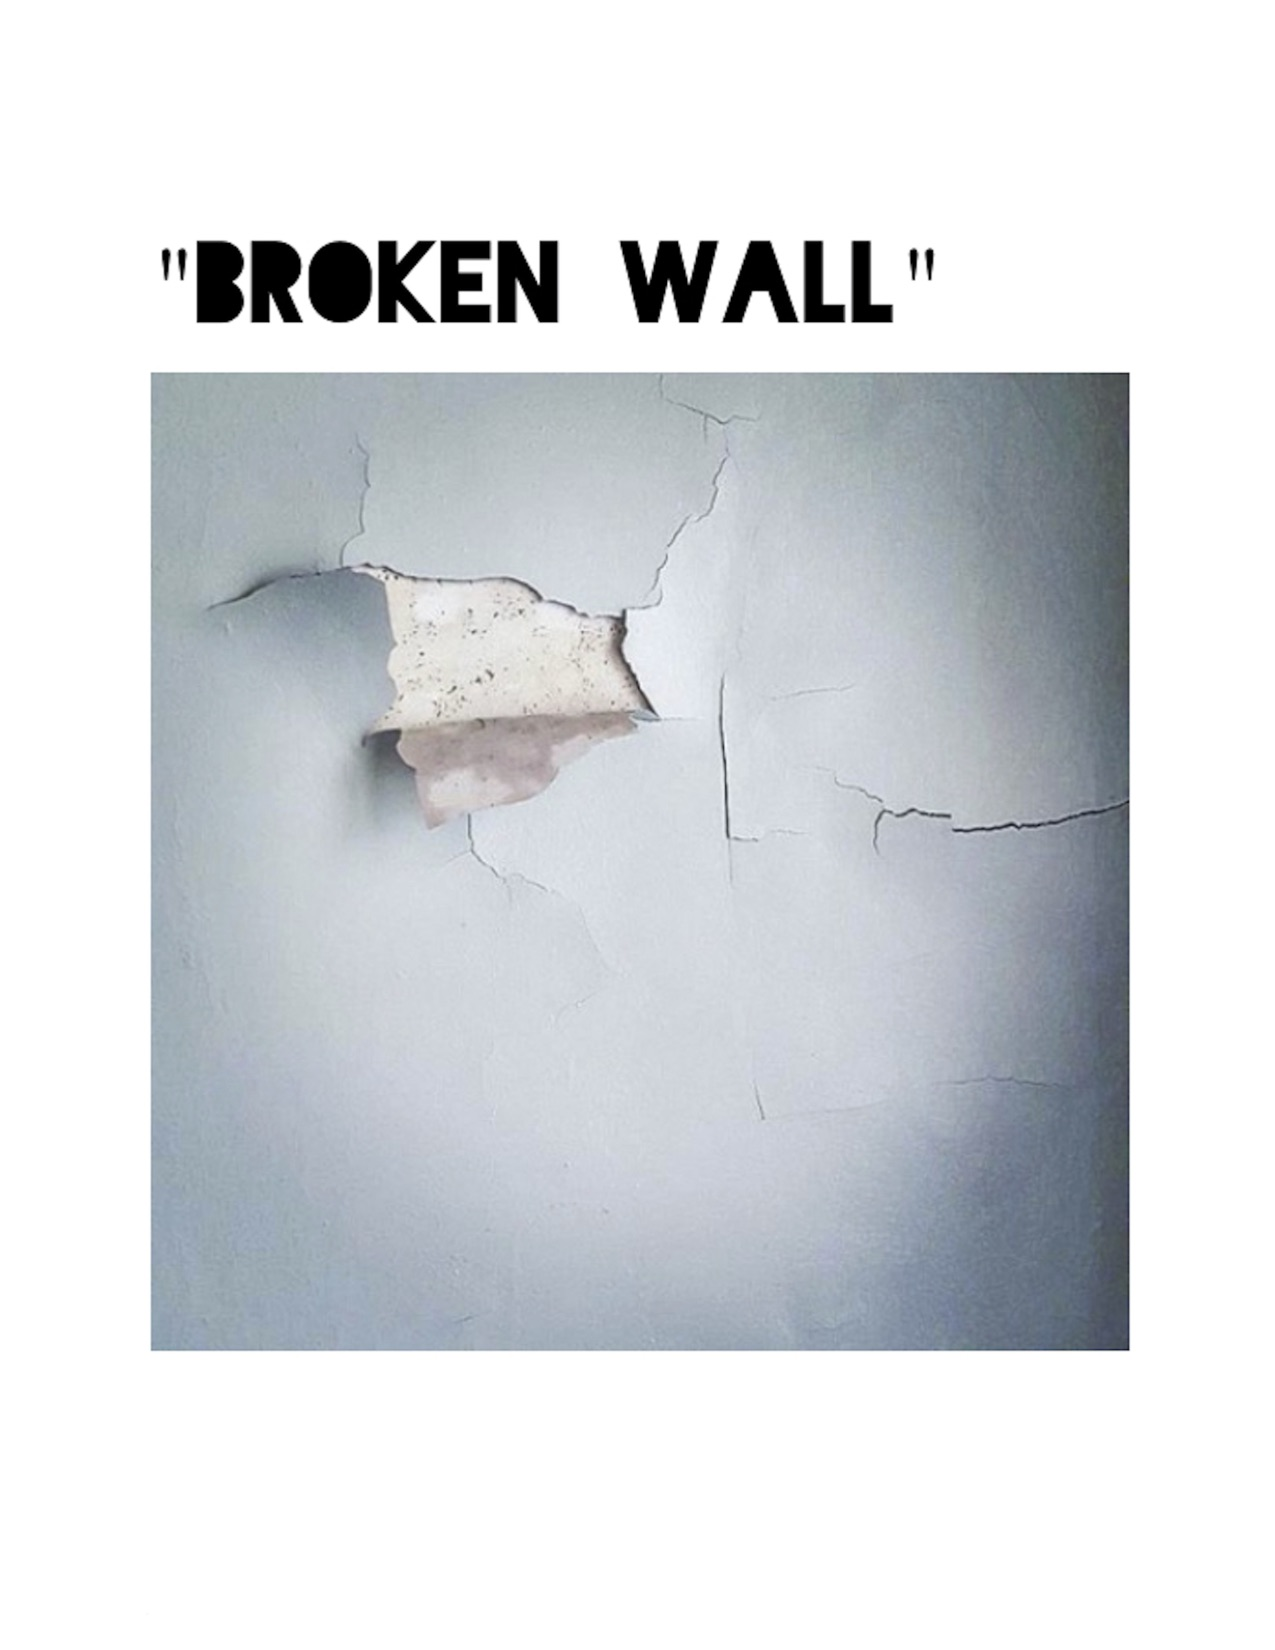 4brokenwall copy.jpg